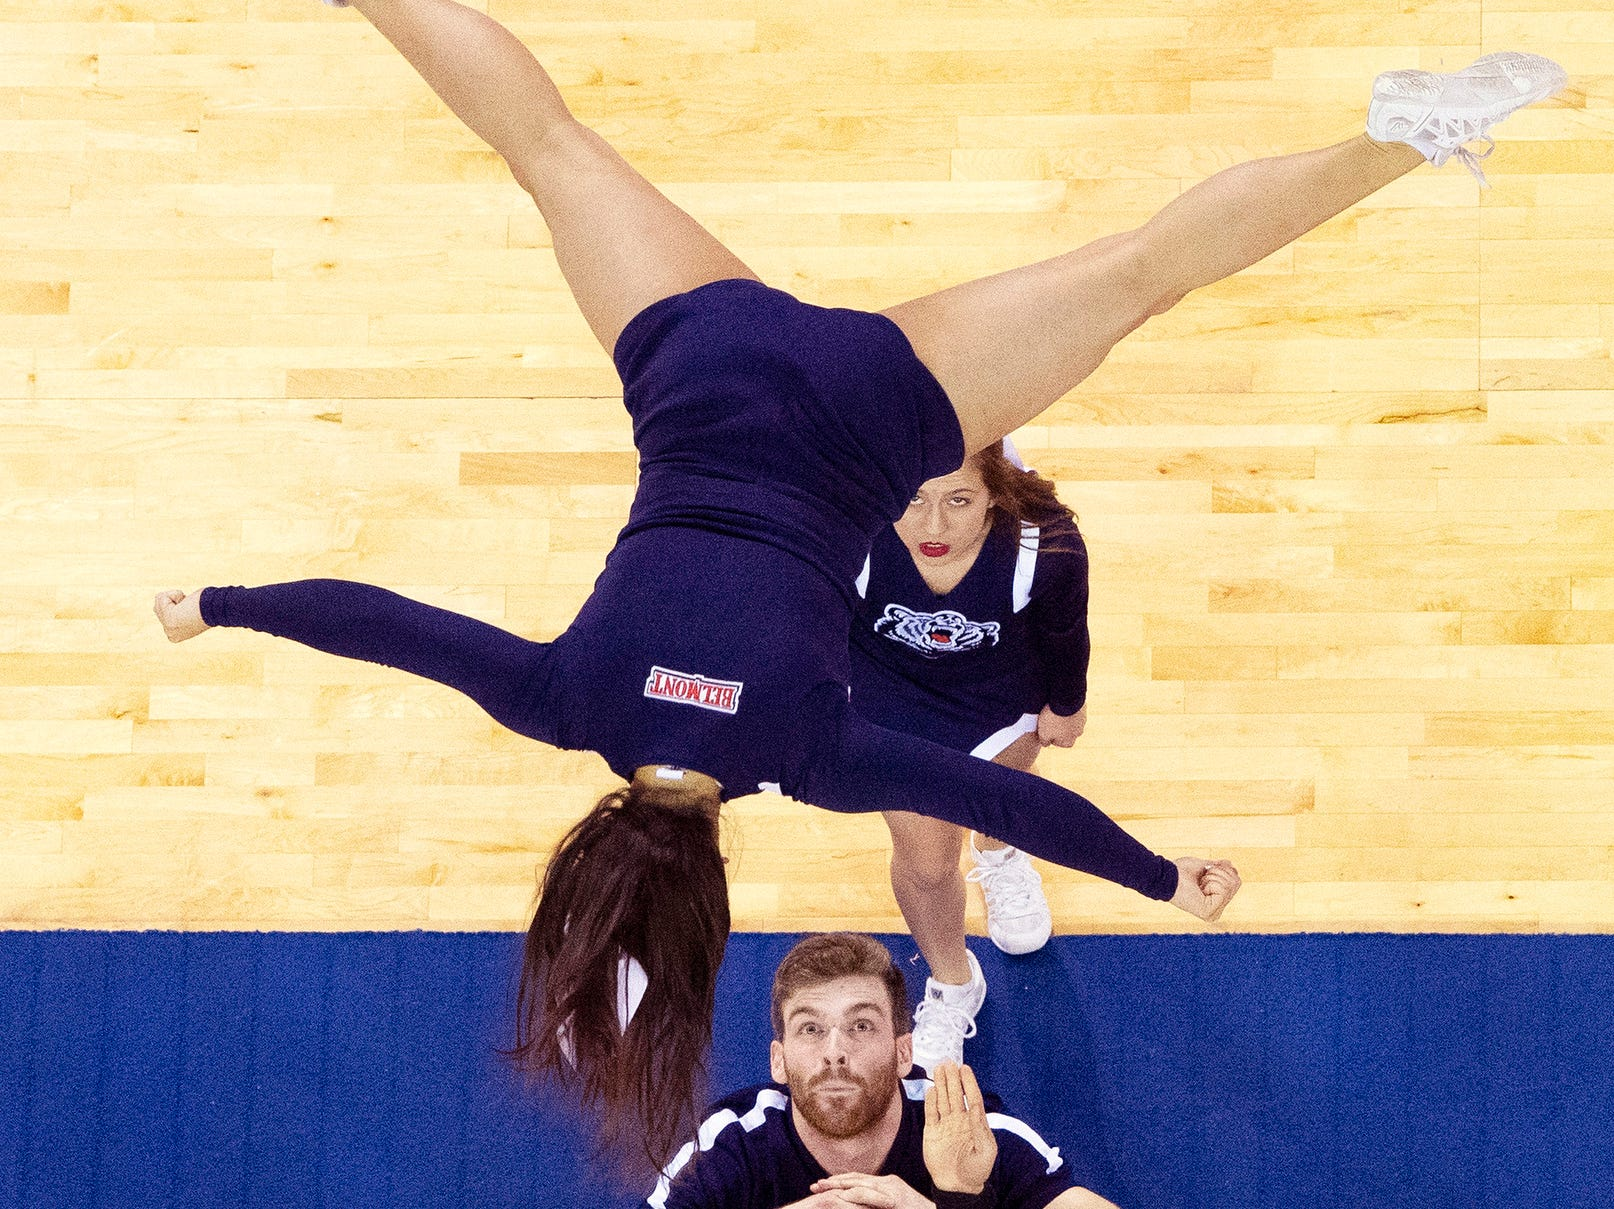 The Belmont Cheerleaders look to catch their flyer during a halftime performance at the Ford Center in Evansville Friday afternoon, March 8, 2019. The Belmont Bruins women's basketball team beat the Tennessee Tech Golden Eagles in the semifinal game of the Ohio Valley Conference Basketball Championships.